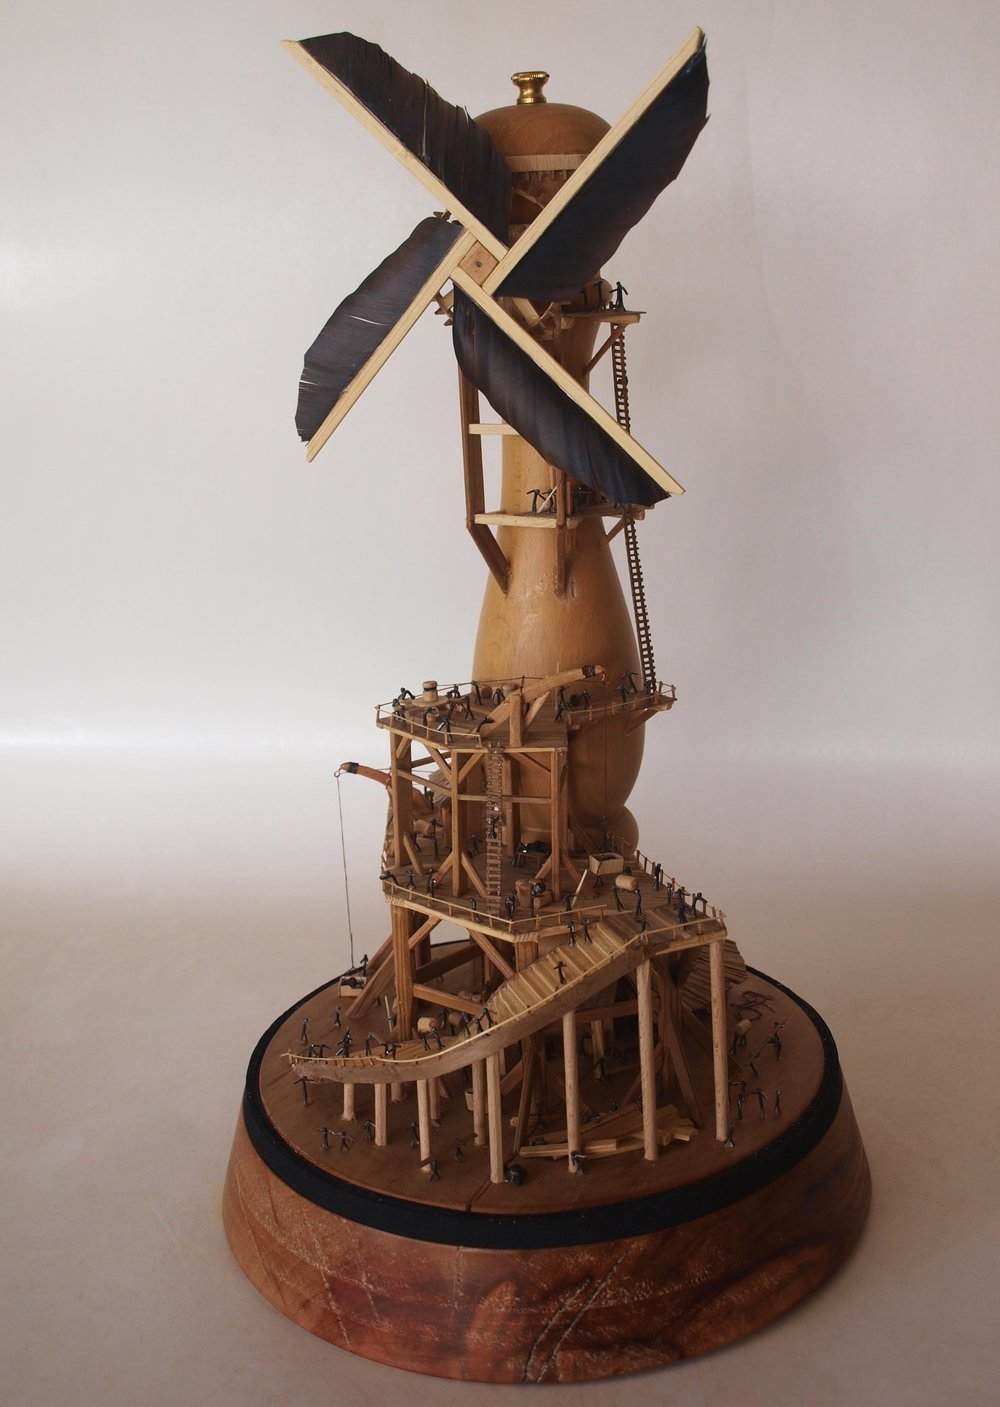 title, Making the wind work, size, 27cm section x 53cm height, materials, wood, fethers, iron yarn, Pepper grinder, 2015.jpg